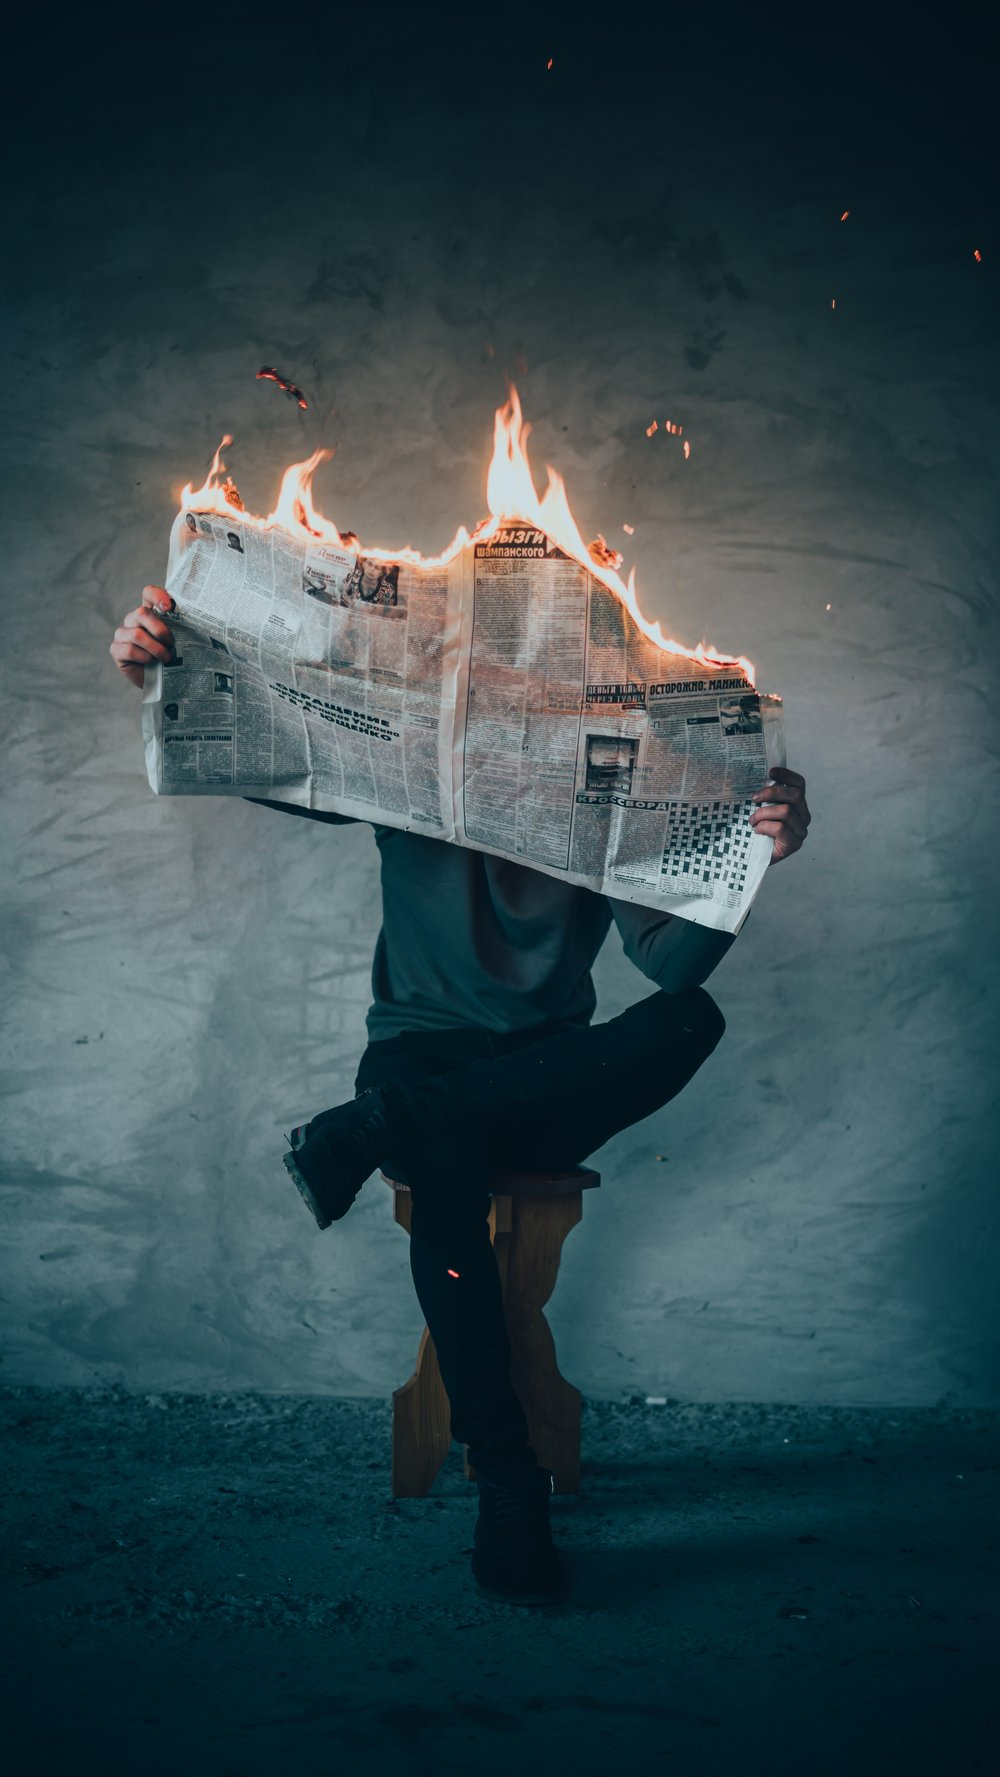 person-reading-newspaper-on-fire-elijah-o-donell-603766.jpg